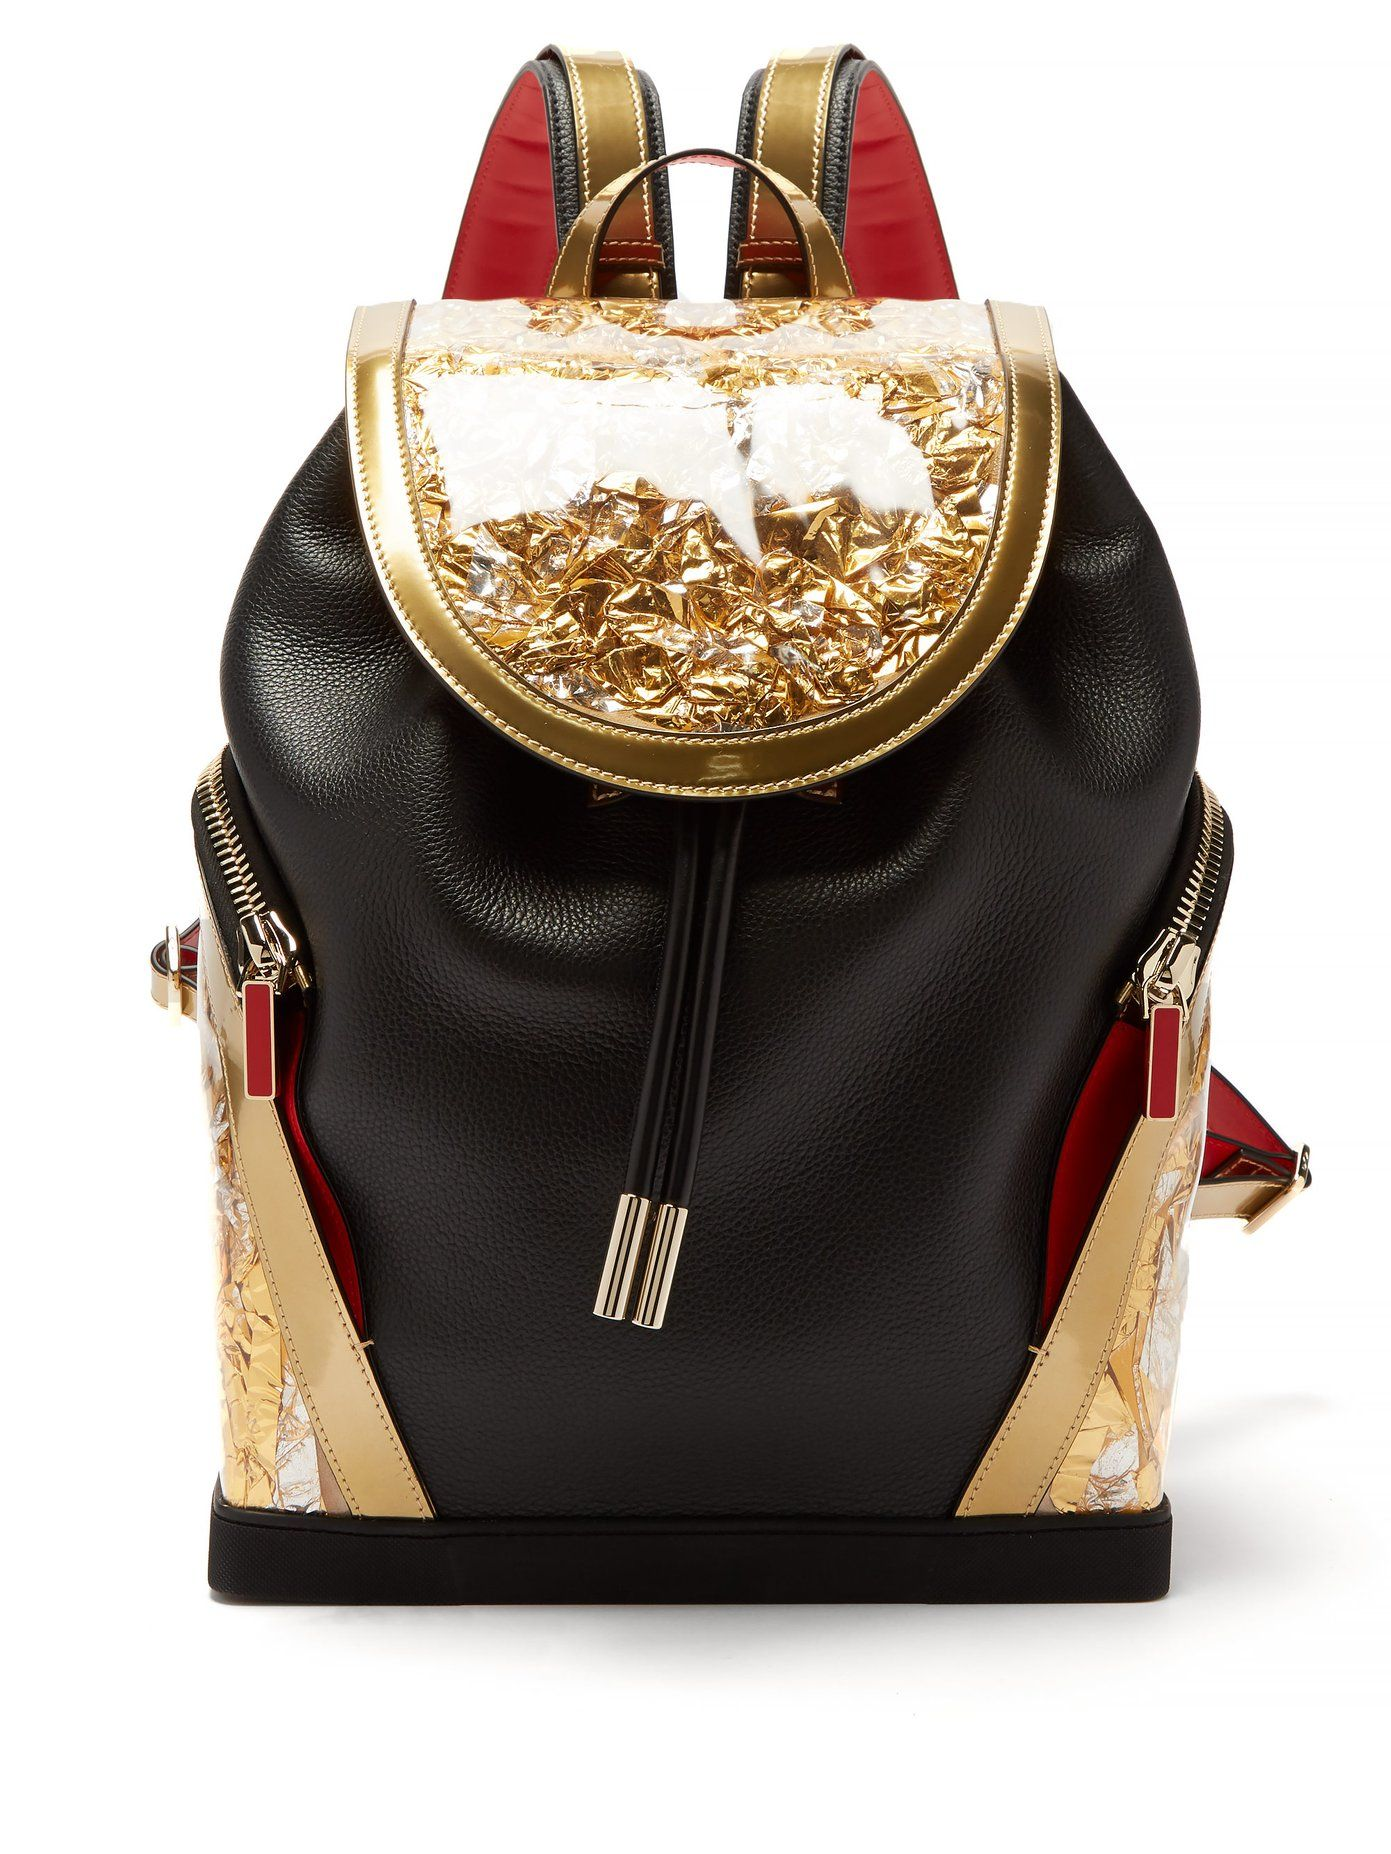 99757a7c Explorafunk contrast-panel leather backpack | Christian Louboutin ...